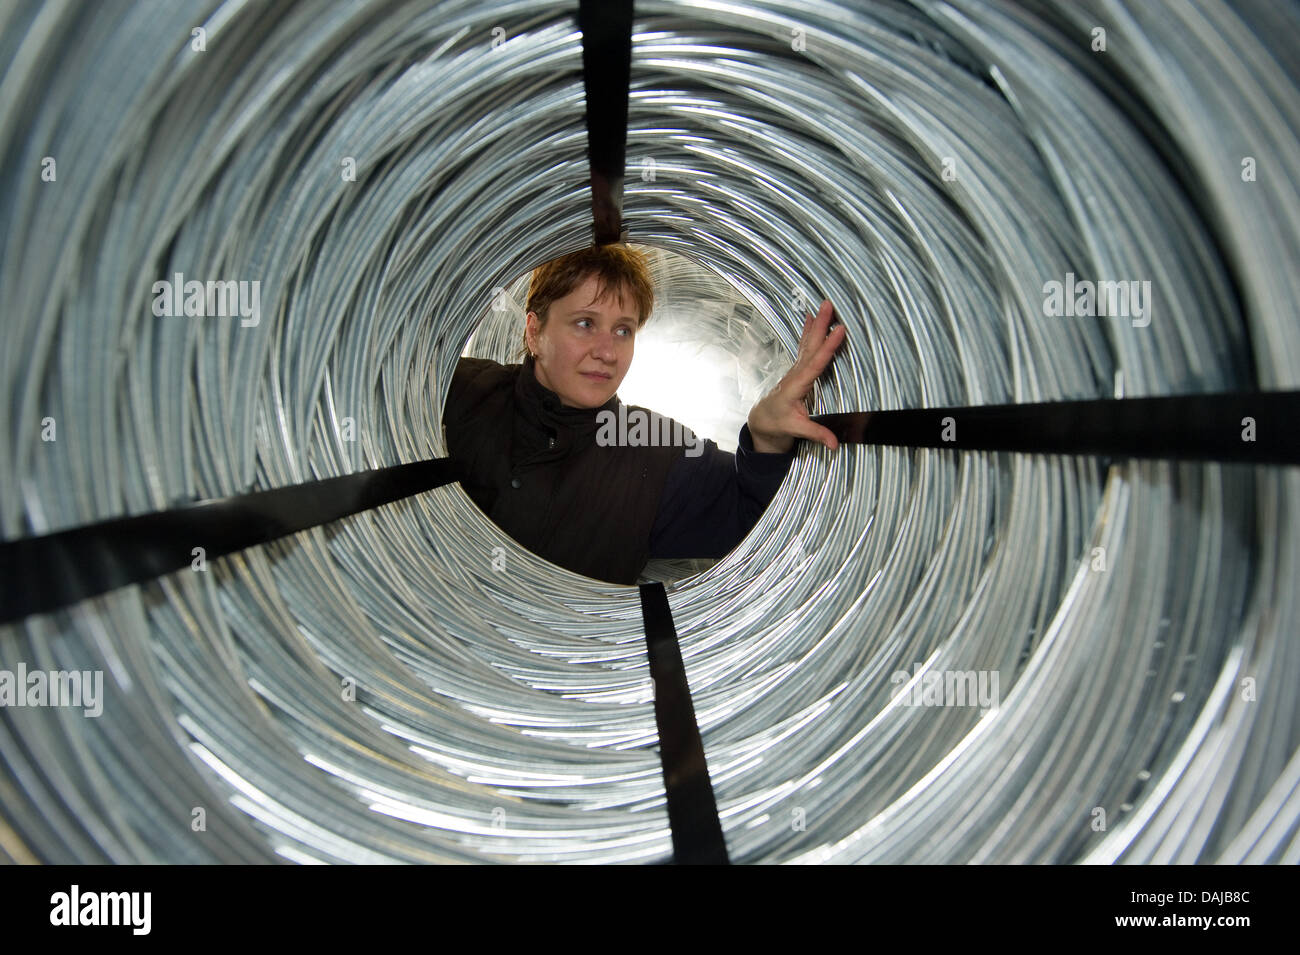 Elke Uekert from thecompany Doletzky Formdraht (Doletzky Shaping Wire) examines a spool of wire in Fuerstenwalde, - Stock Image